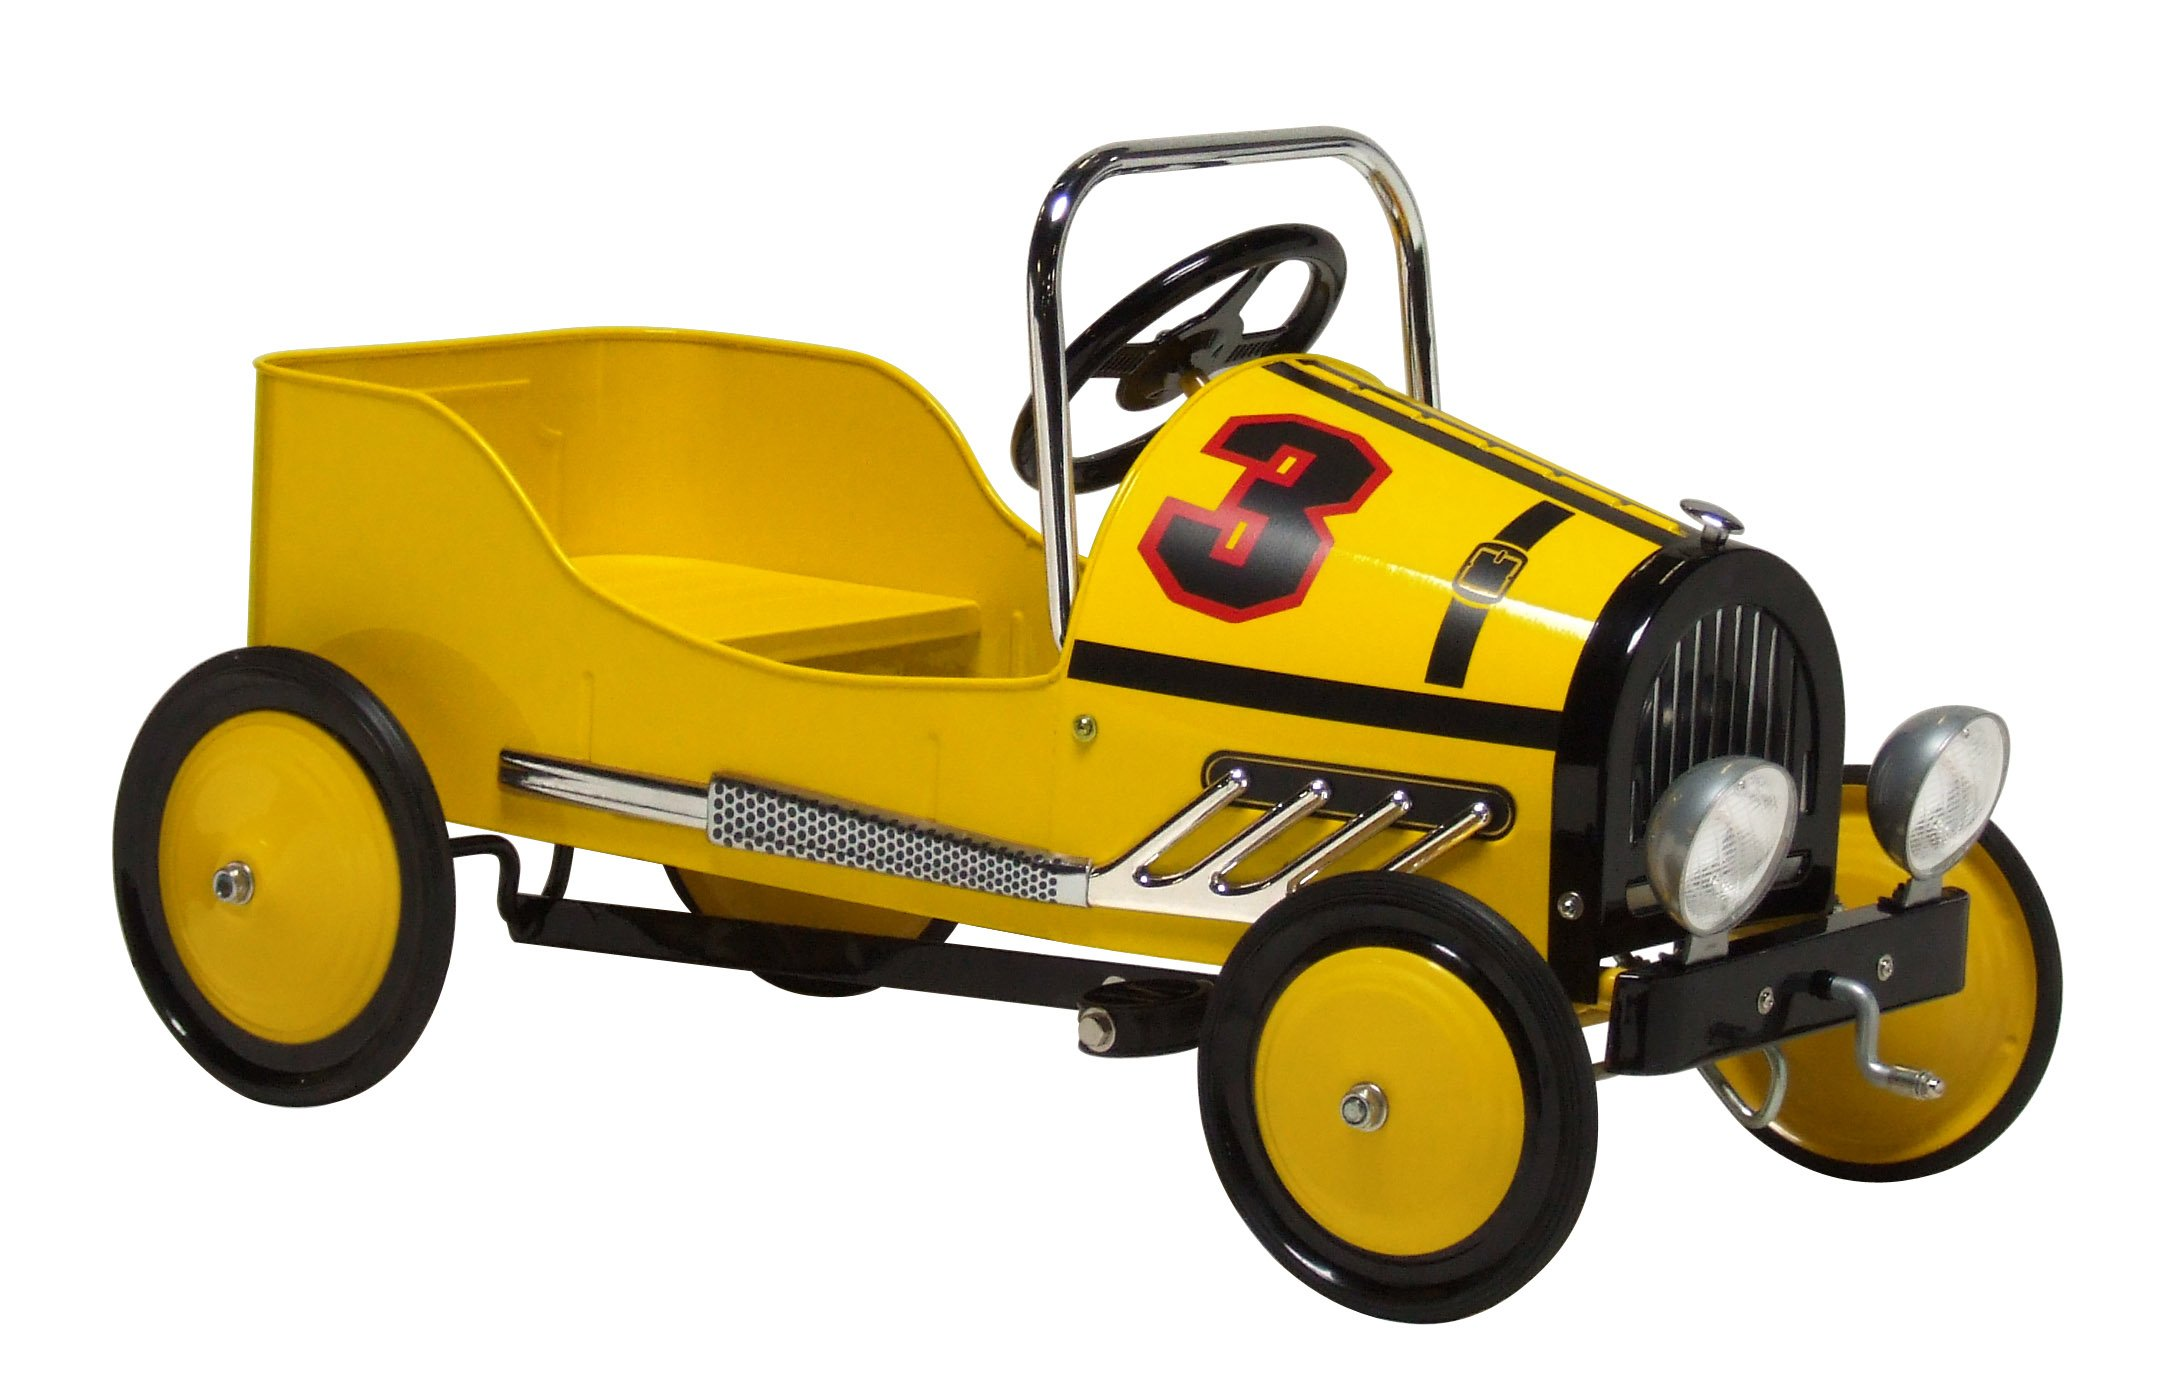 Morgan Cycle Retro Style Racer Pedal Car, Yellow